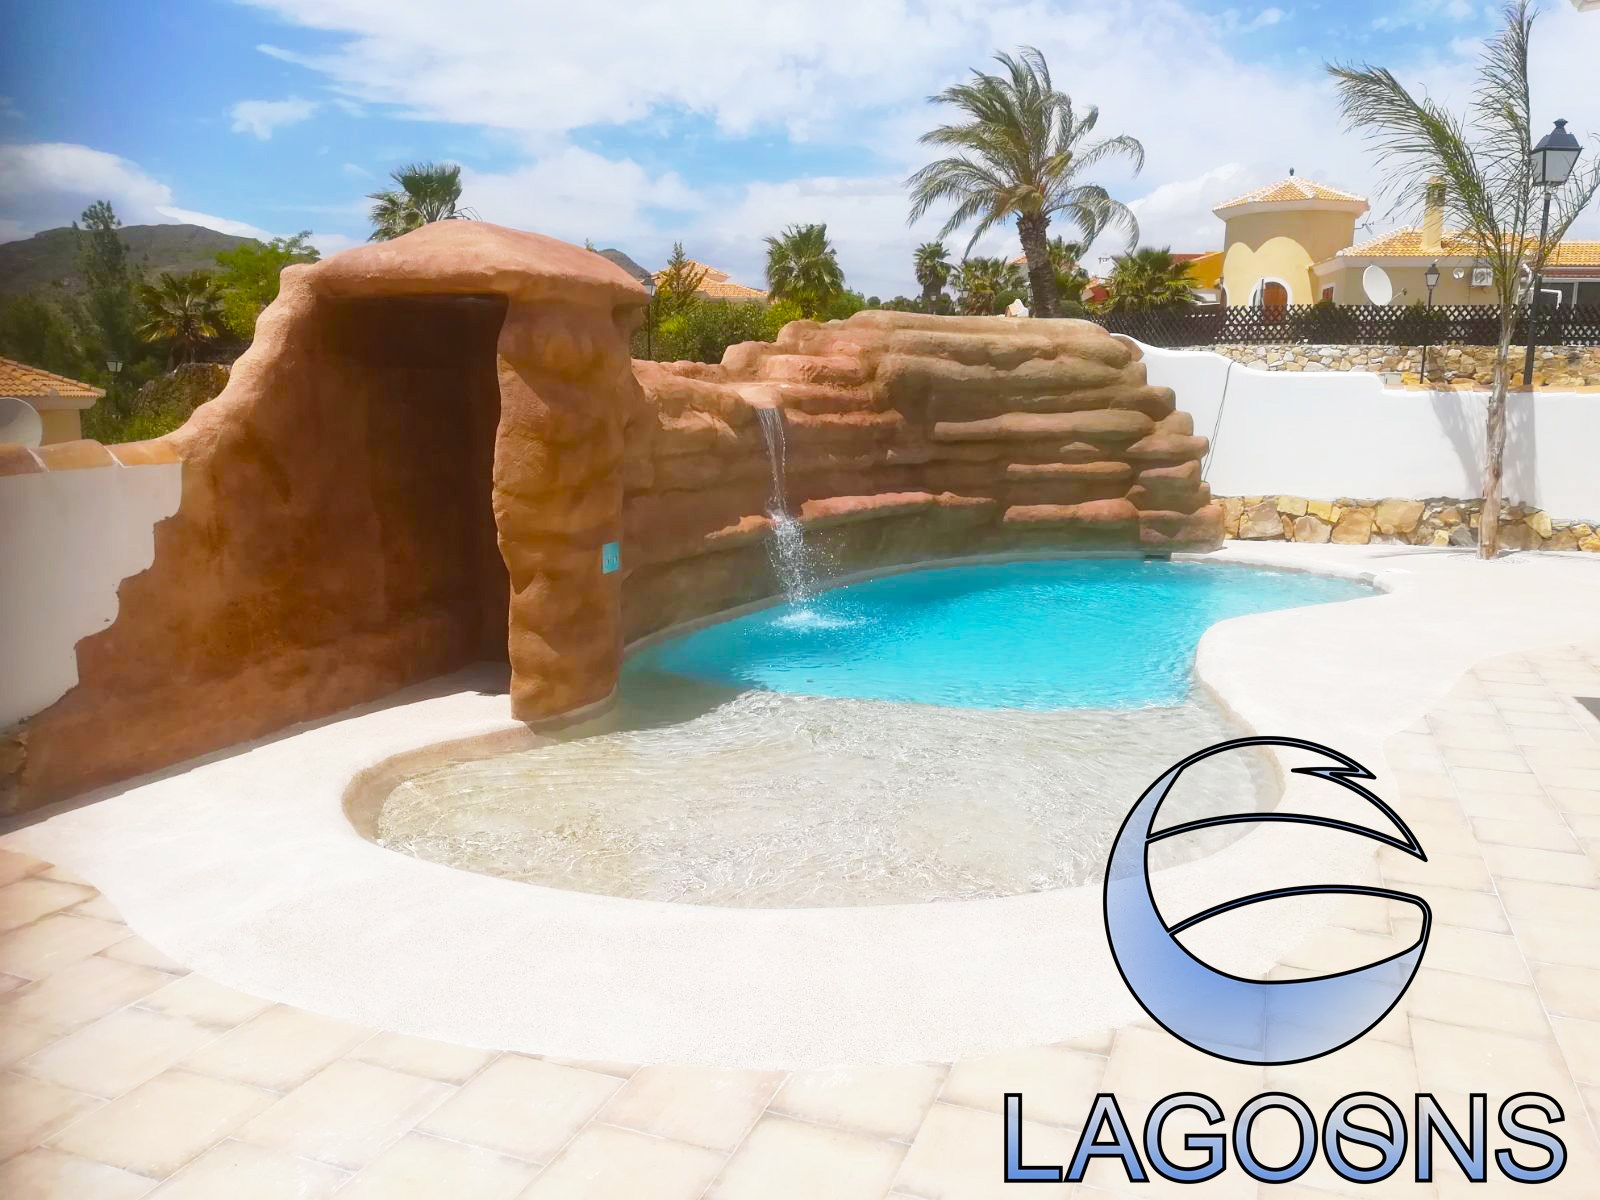 LAGOONS pool and landscaping